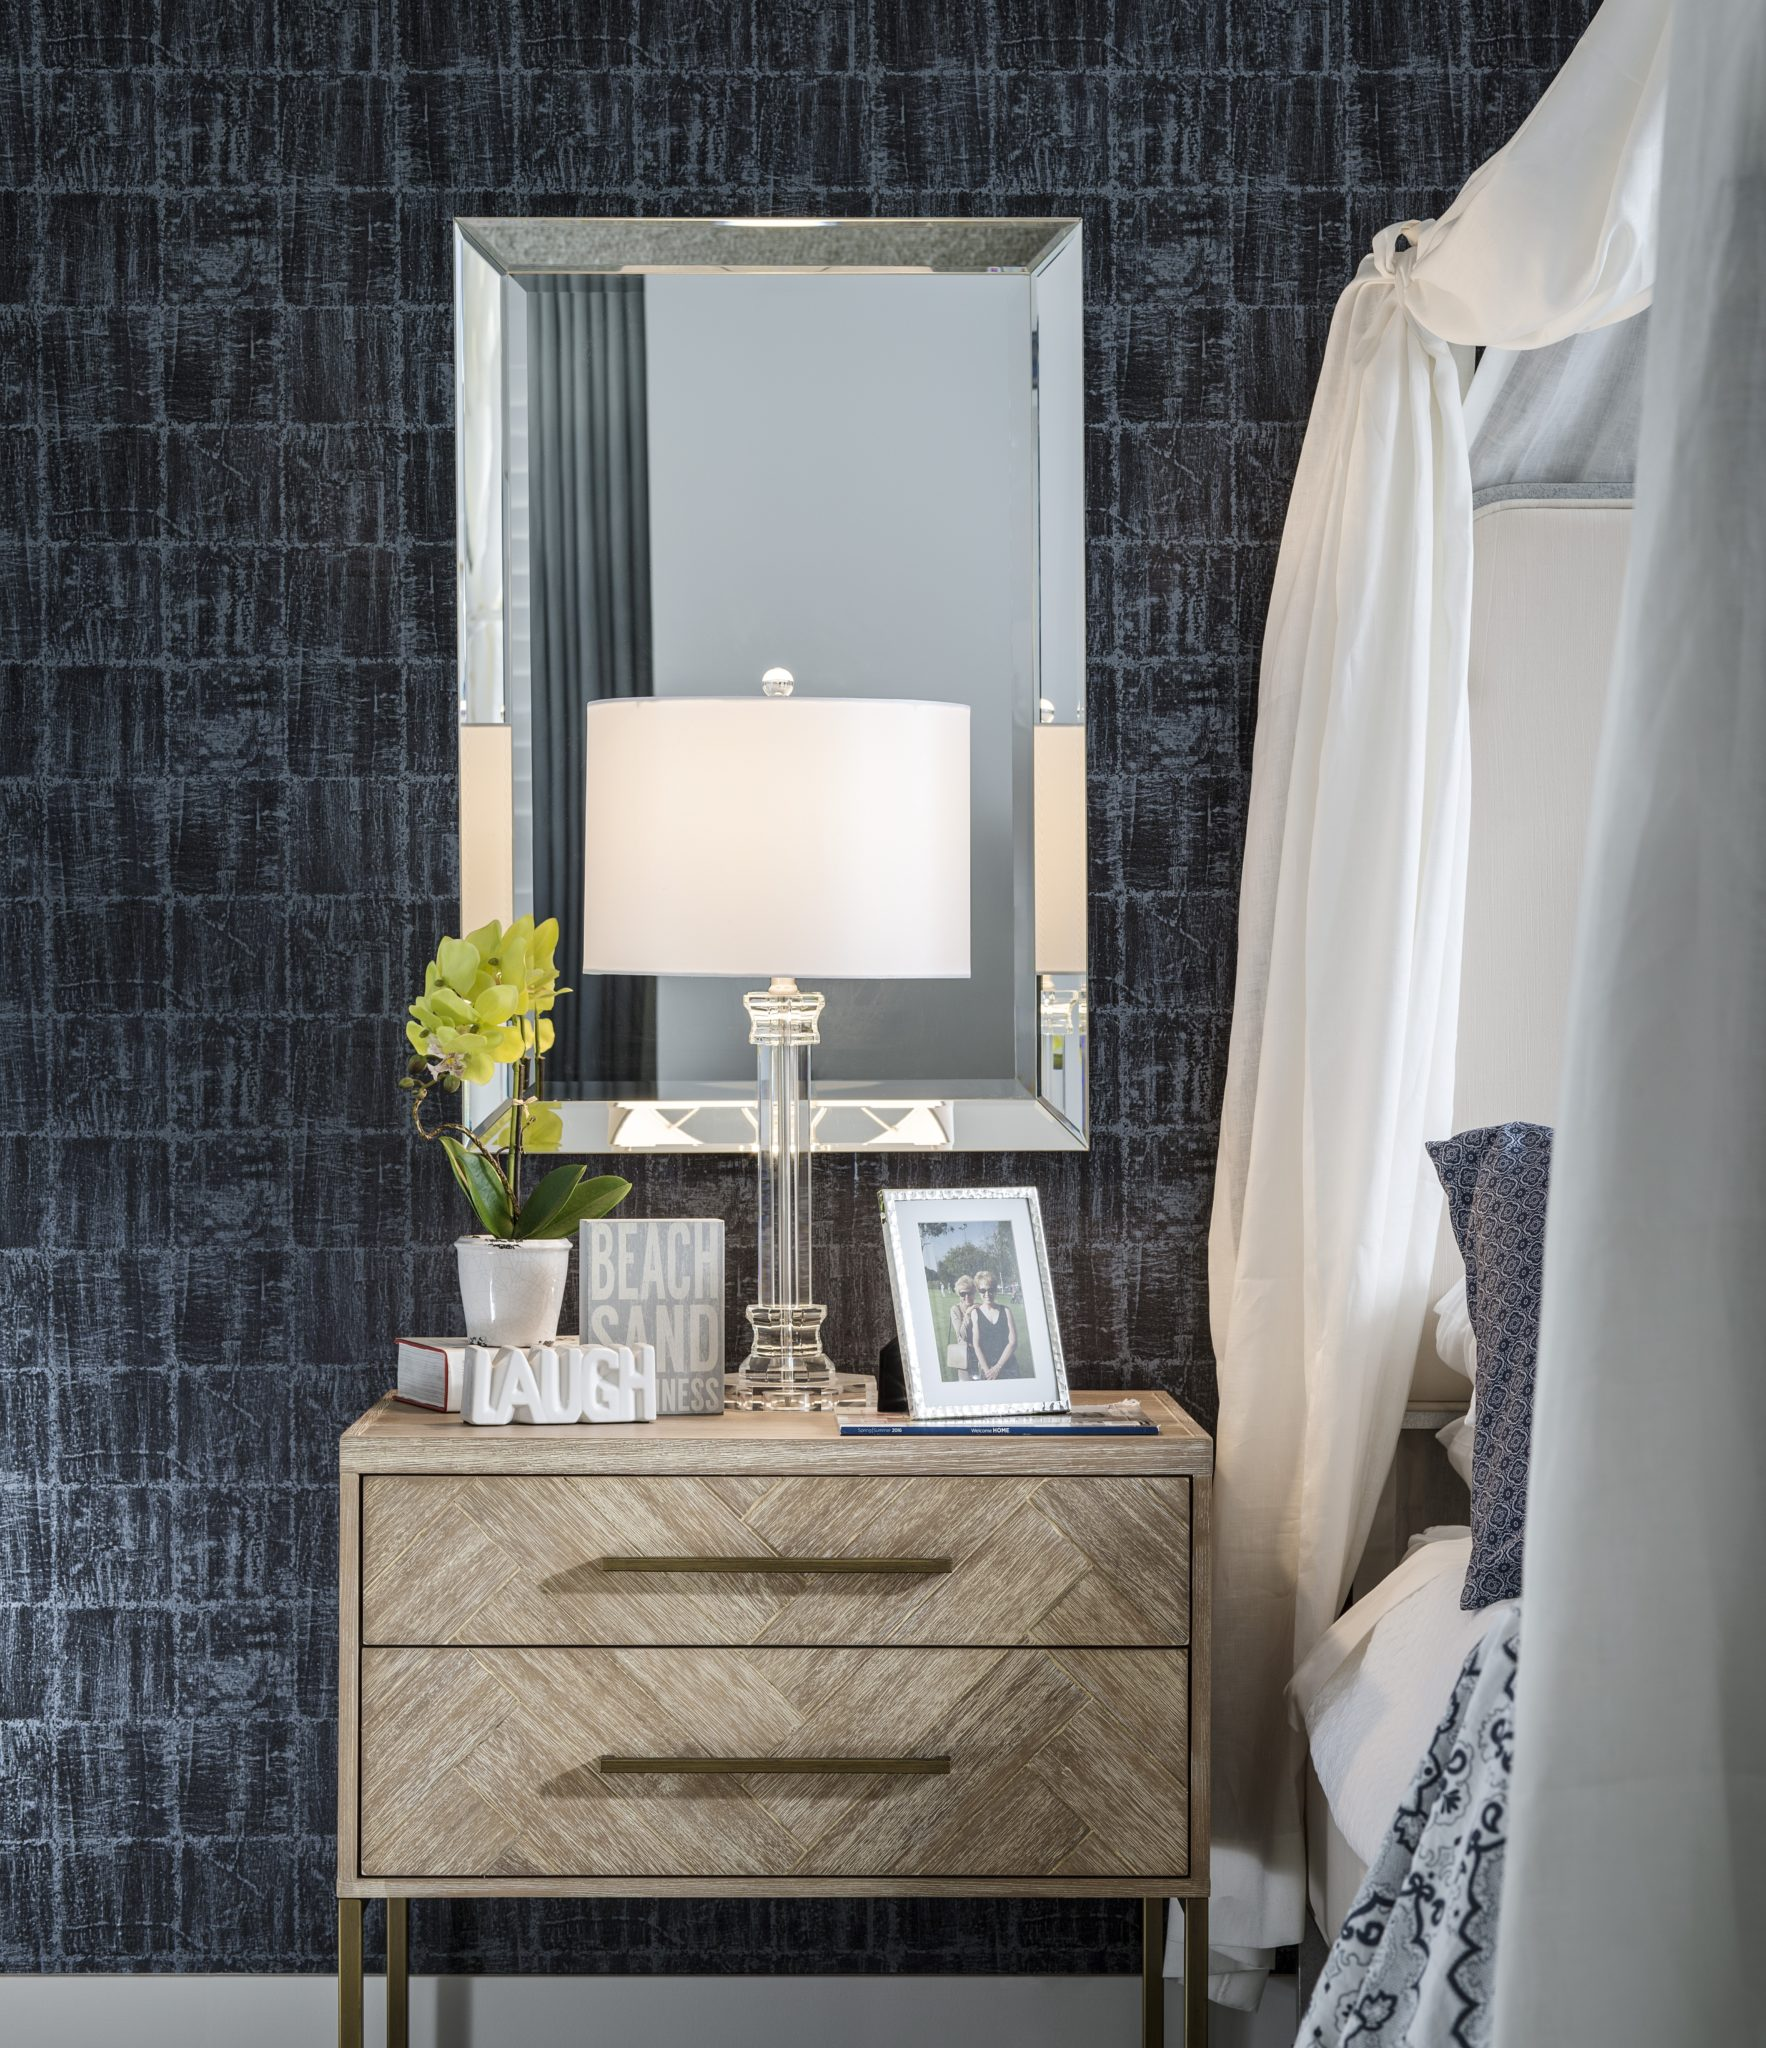 Wallpaper Accent Wall andReclaimed Wood Night Stand by SUZA DESIGN